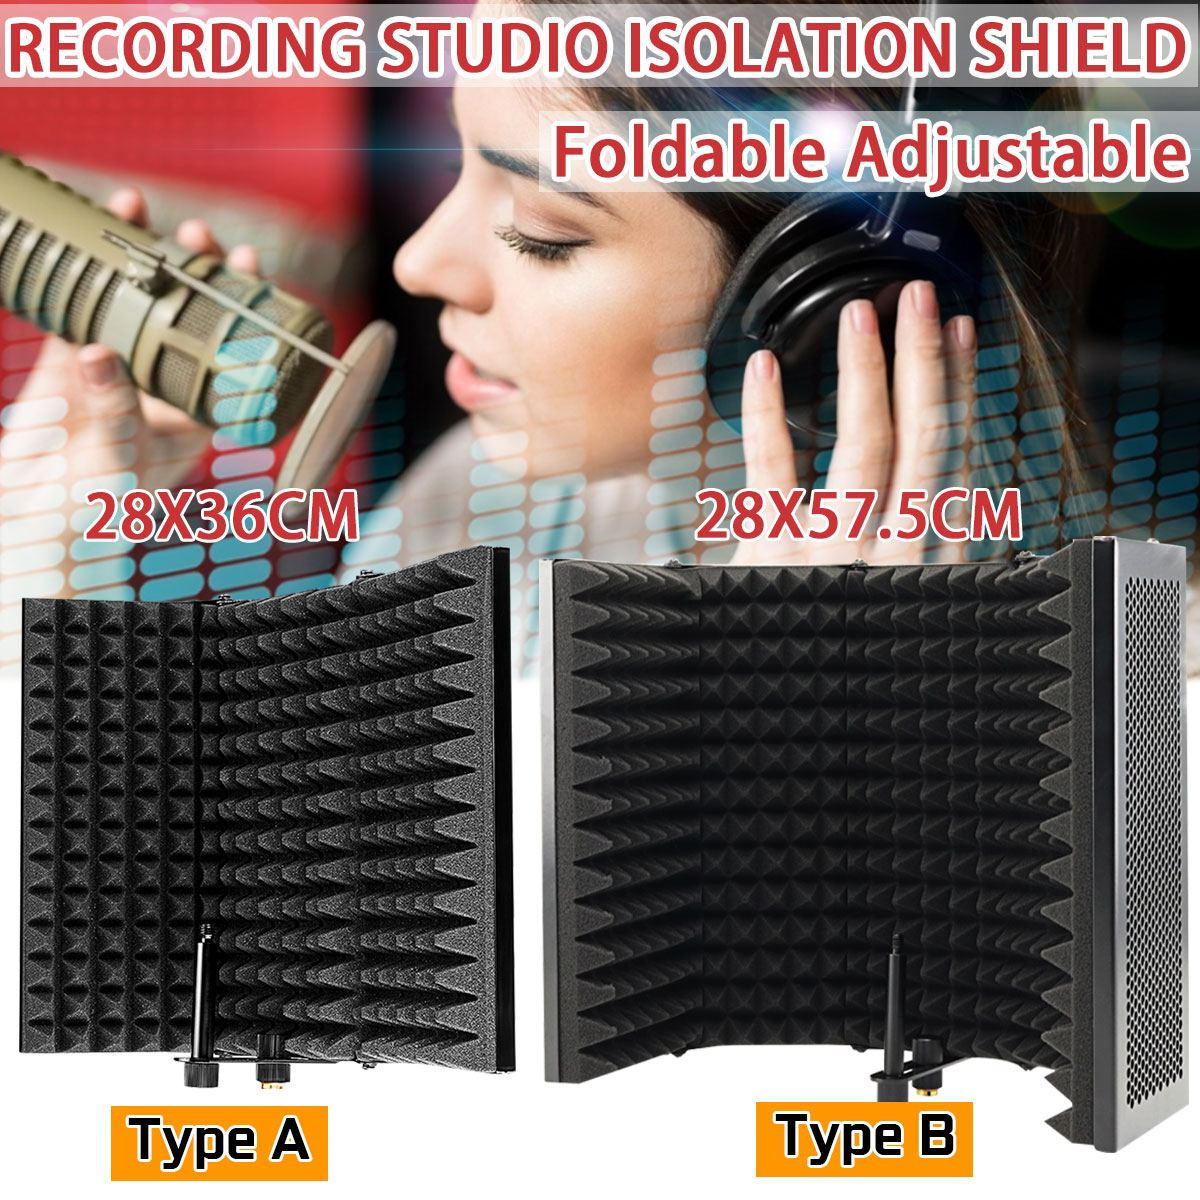 Foldable Microphone Acoustic Isolation Shield Acoustic Foams Panel Studio For Recording Live Broadcast Microphone Accessories